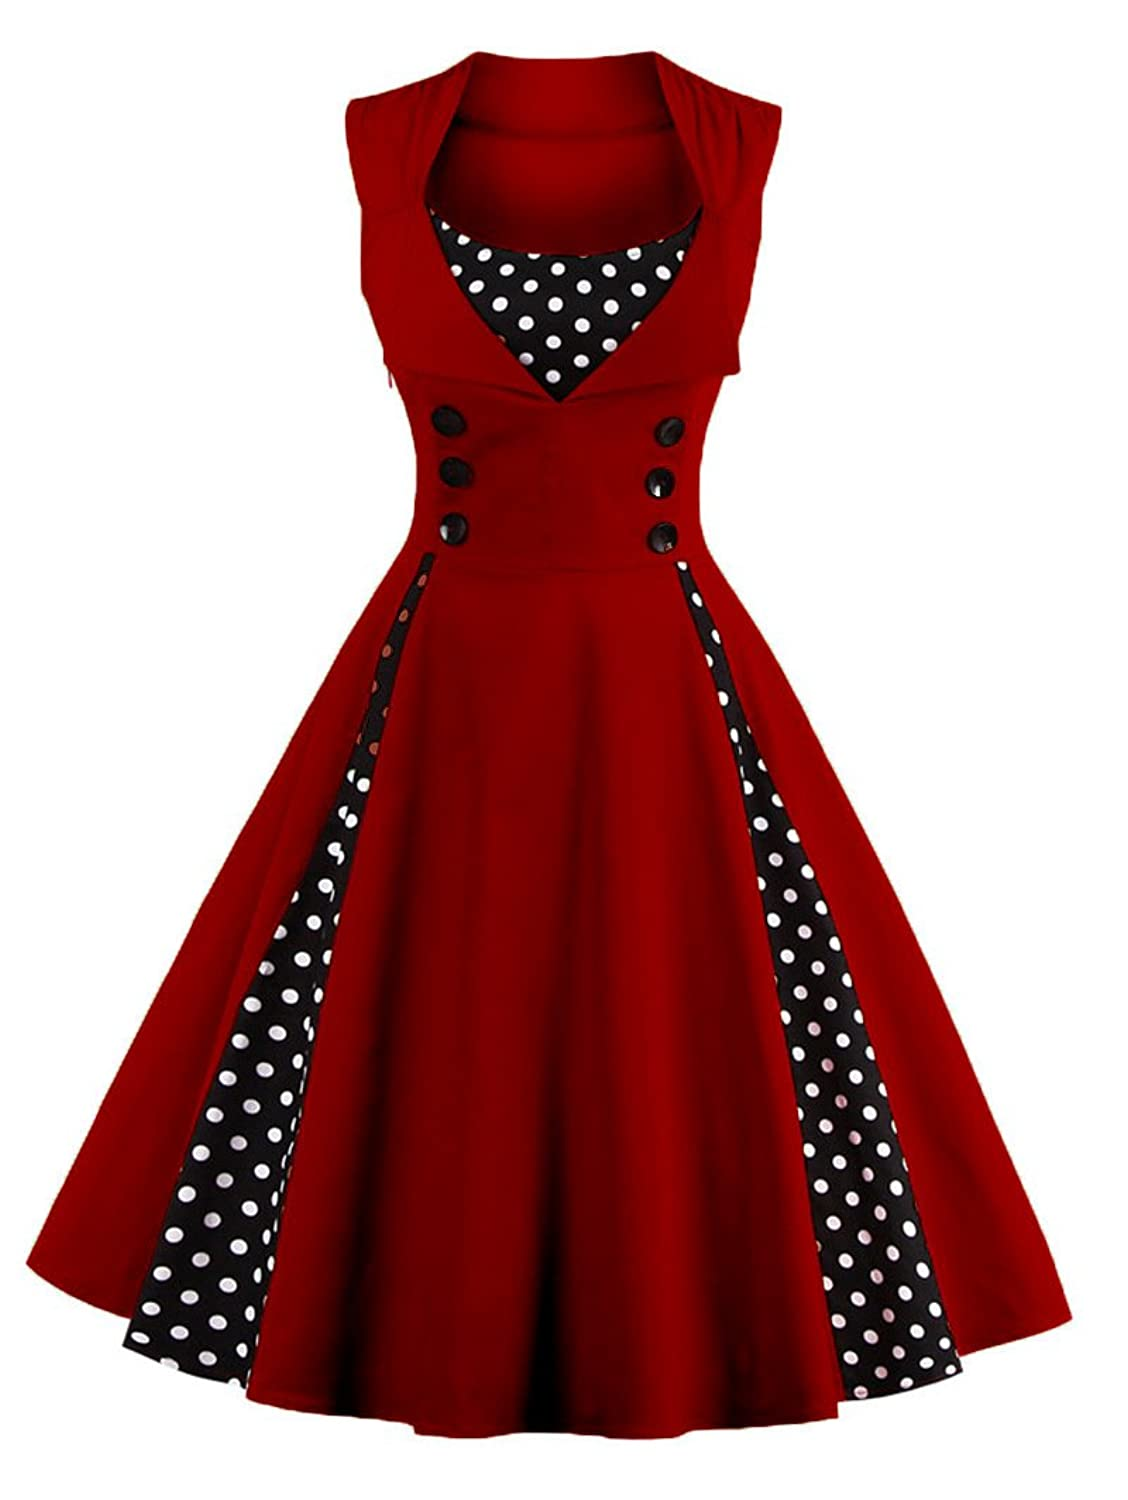 Vintage Polka Dot Dresses – 50s Spotty and Ditsy Prints LUNAJANY Womens Rockabilly Vintage Polka Dot Pin up Swing Cocktail Party Dress $24.59 AT vintagedancer.com